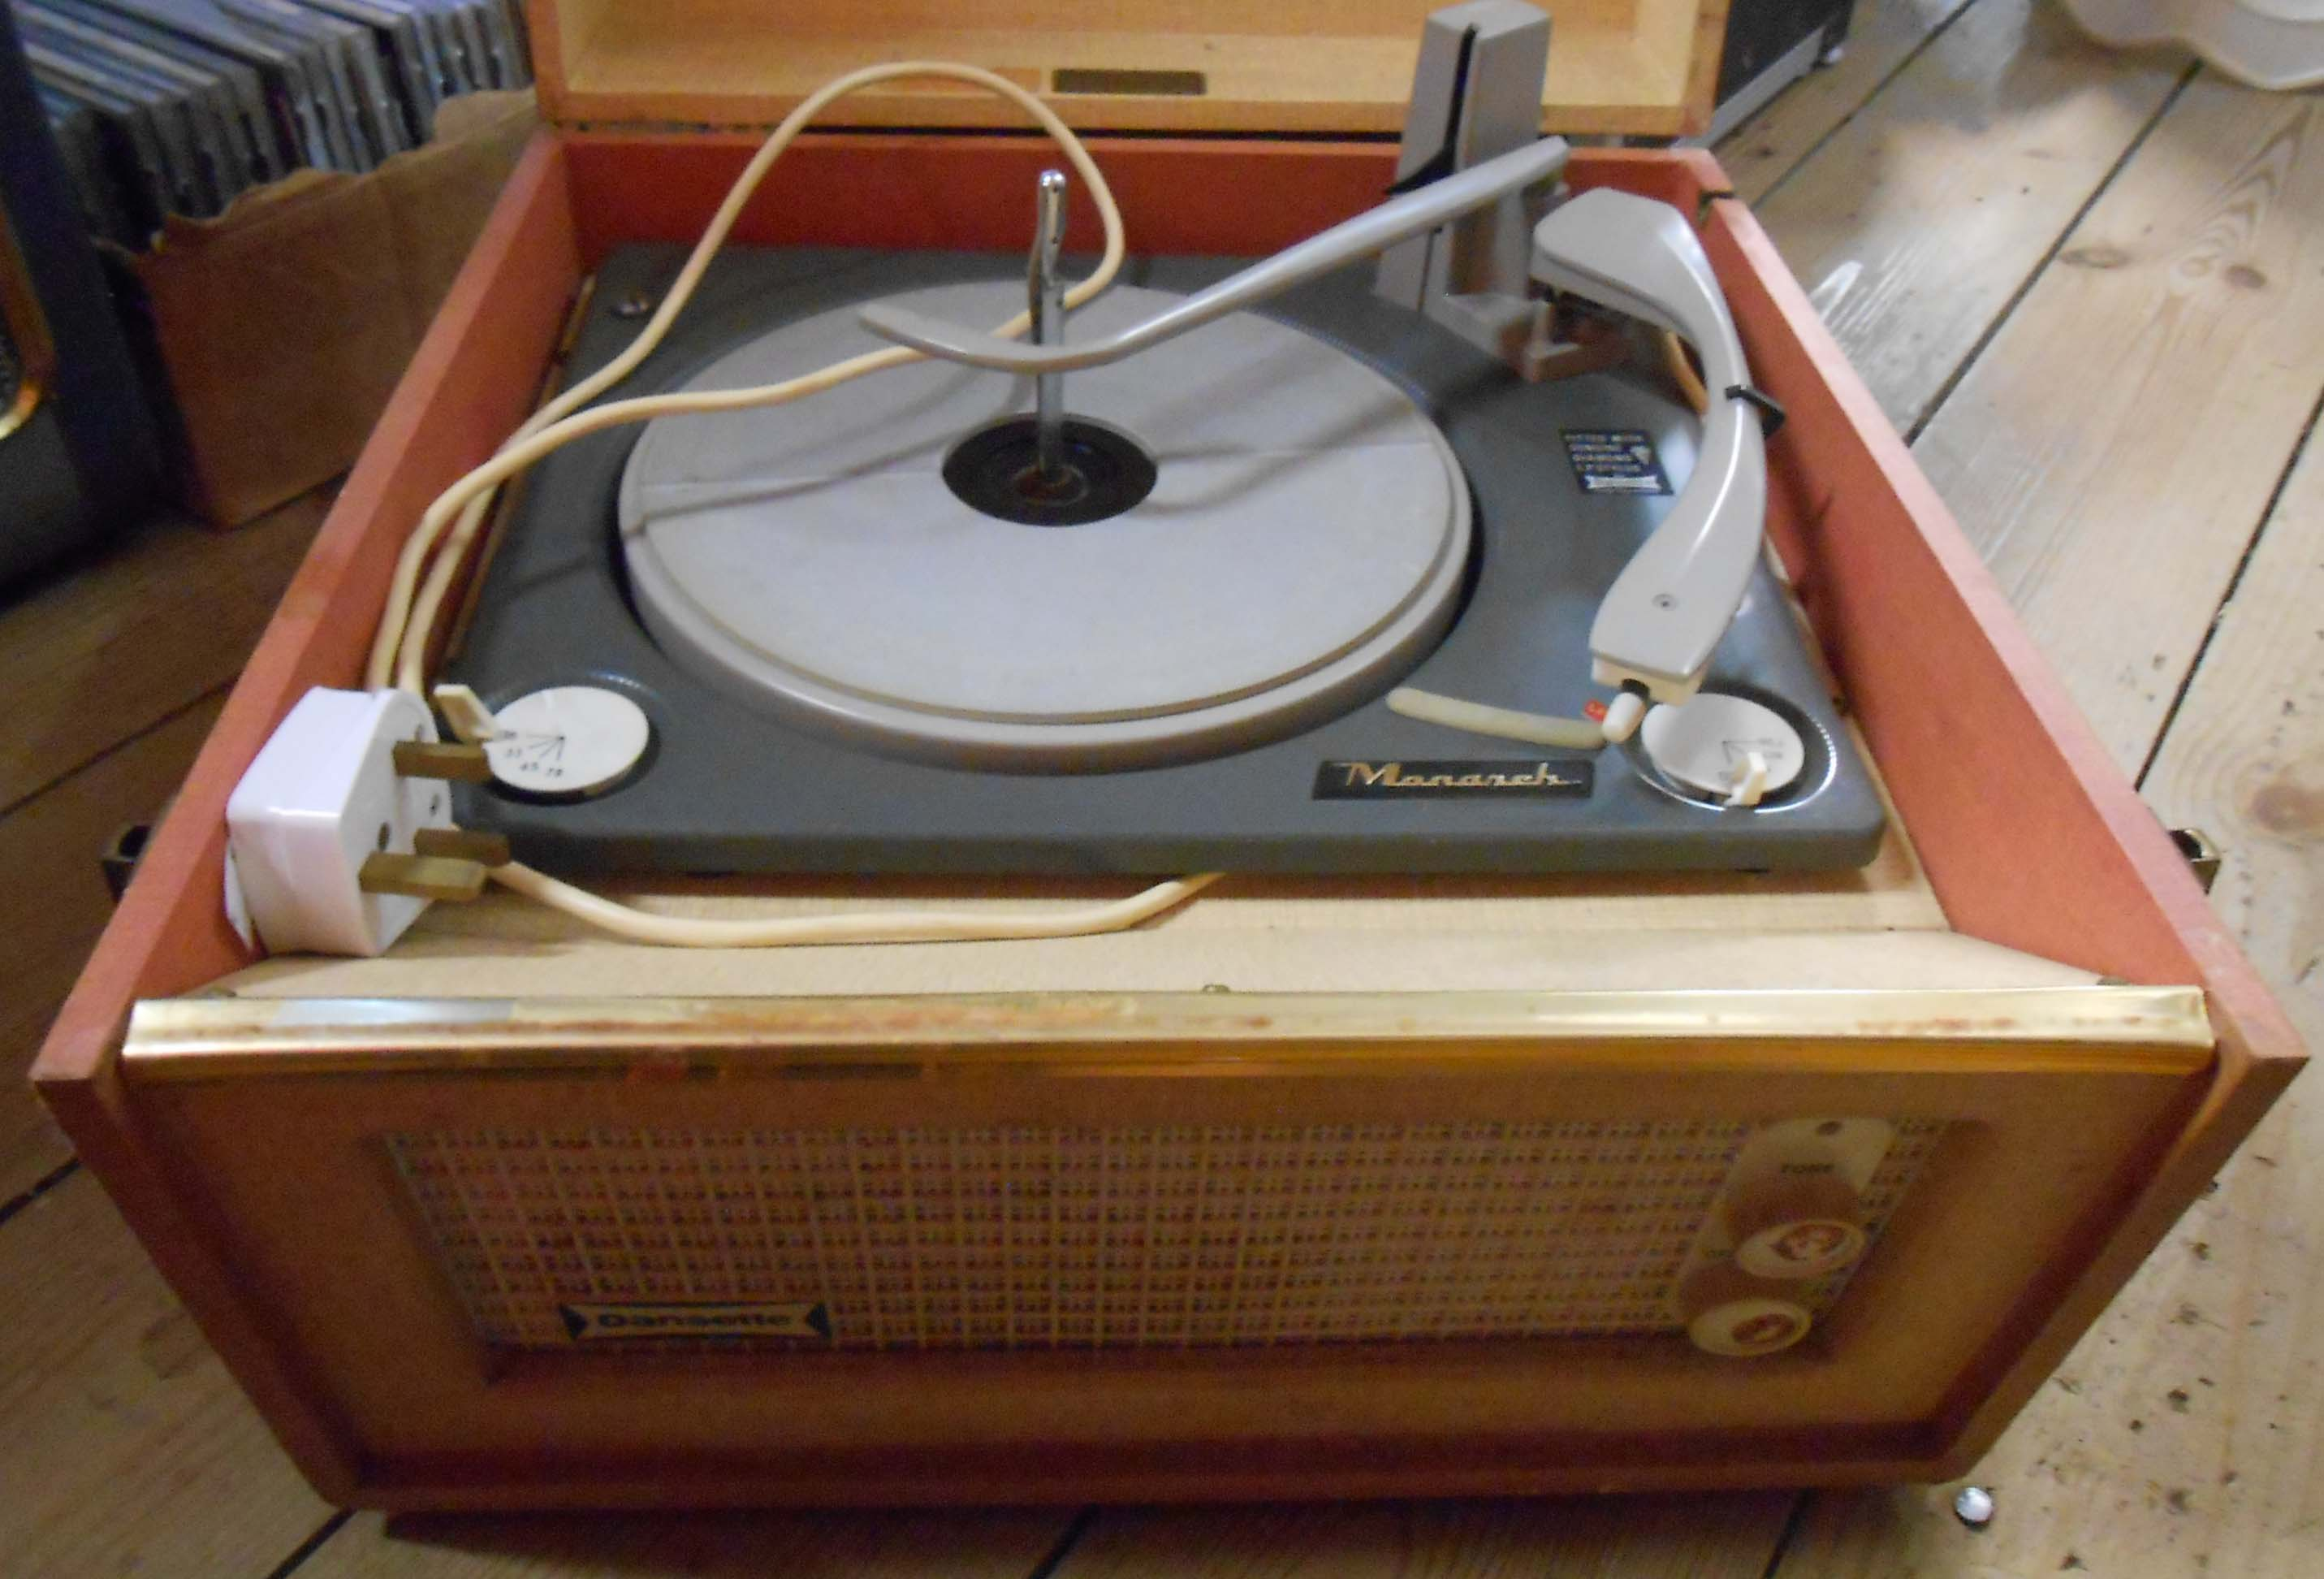 A vintage Dansette Bermuda portable record player with Monarch record deck